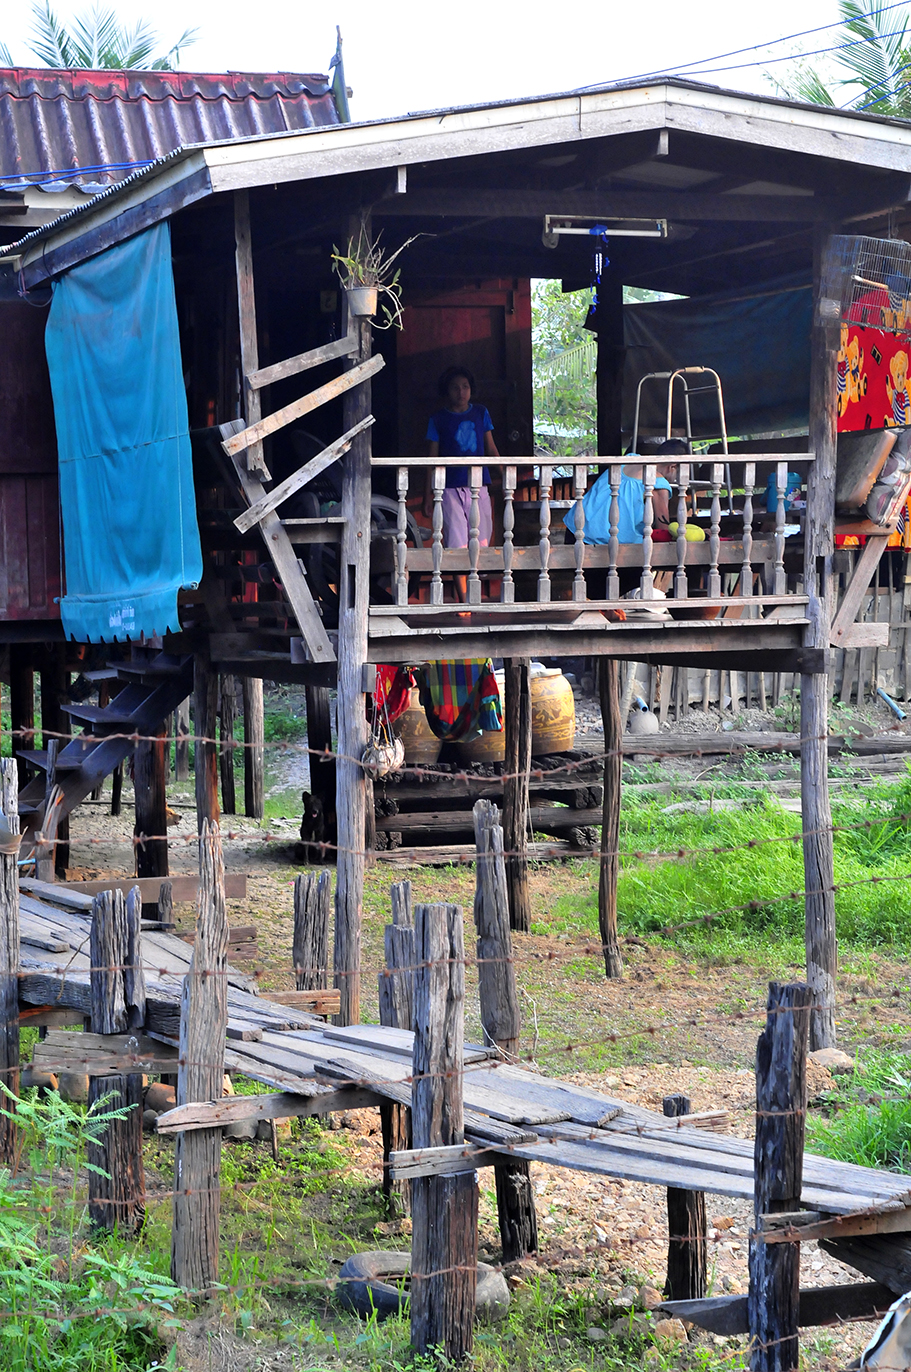 A photograph of a home built of wood lifted several feet off the ground on stilts.